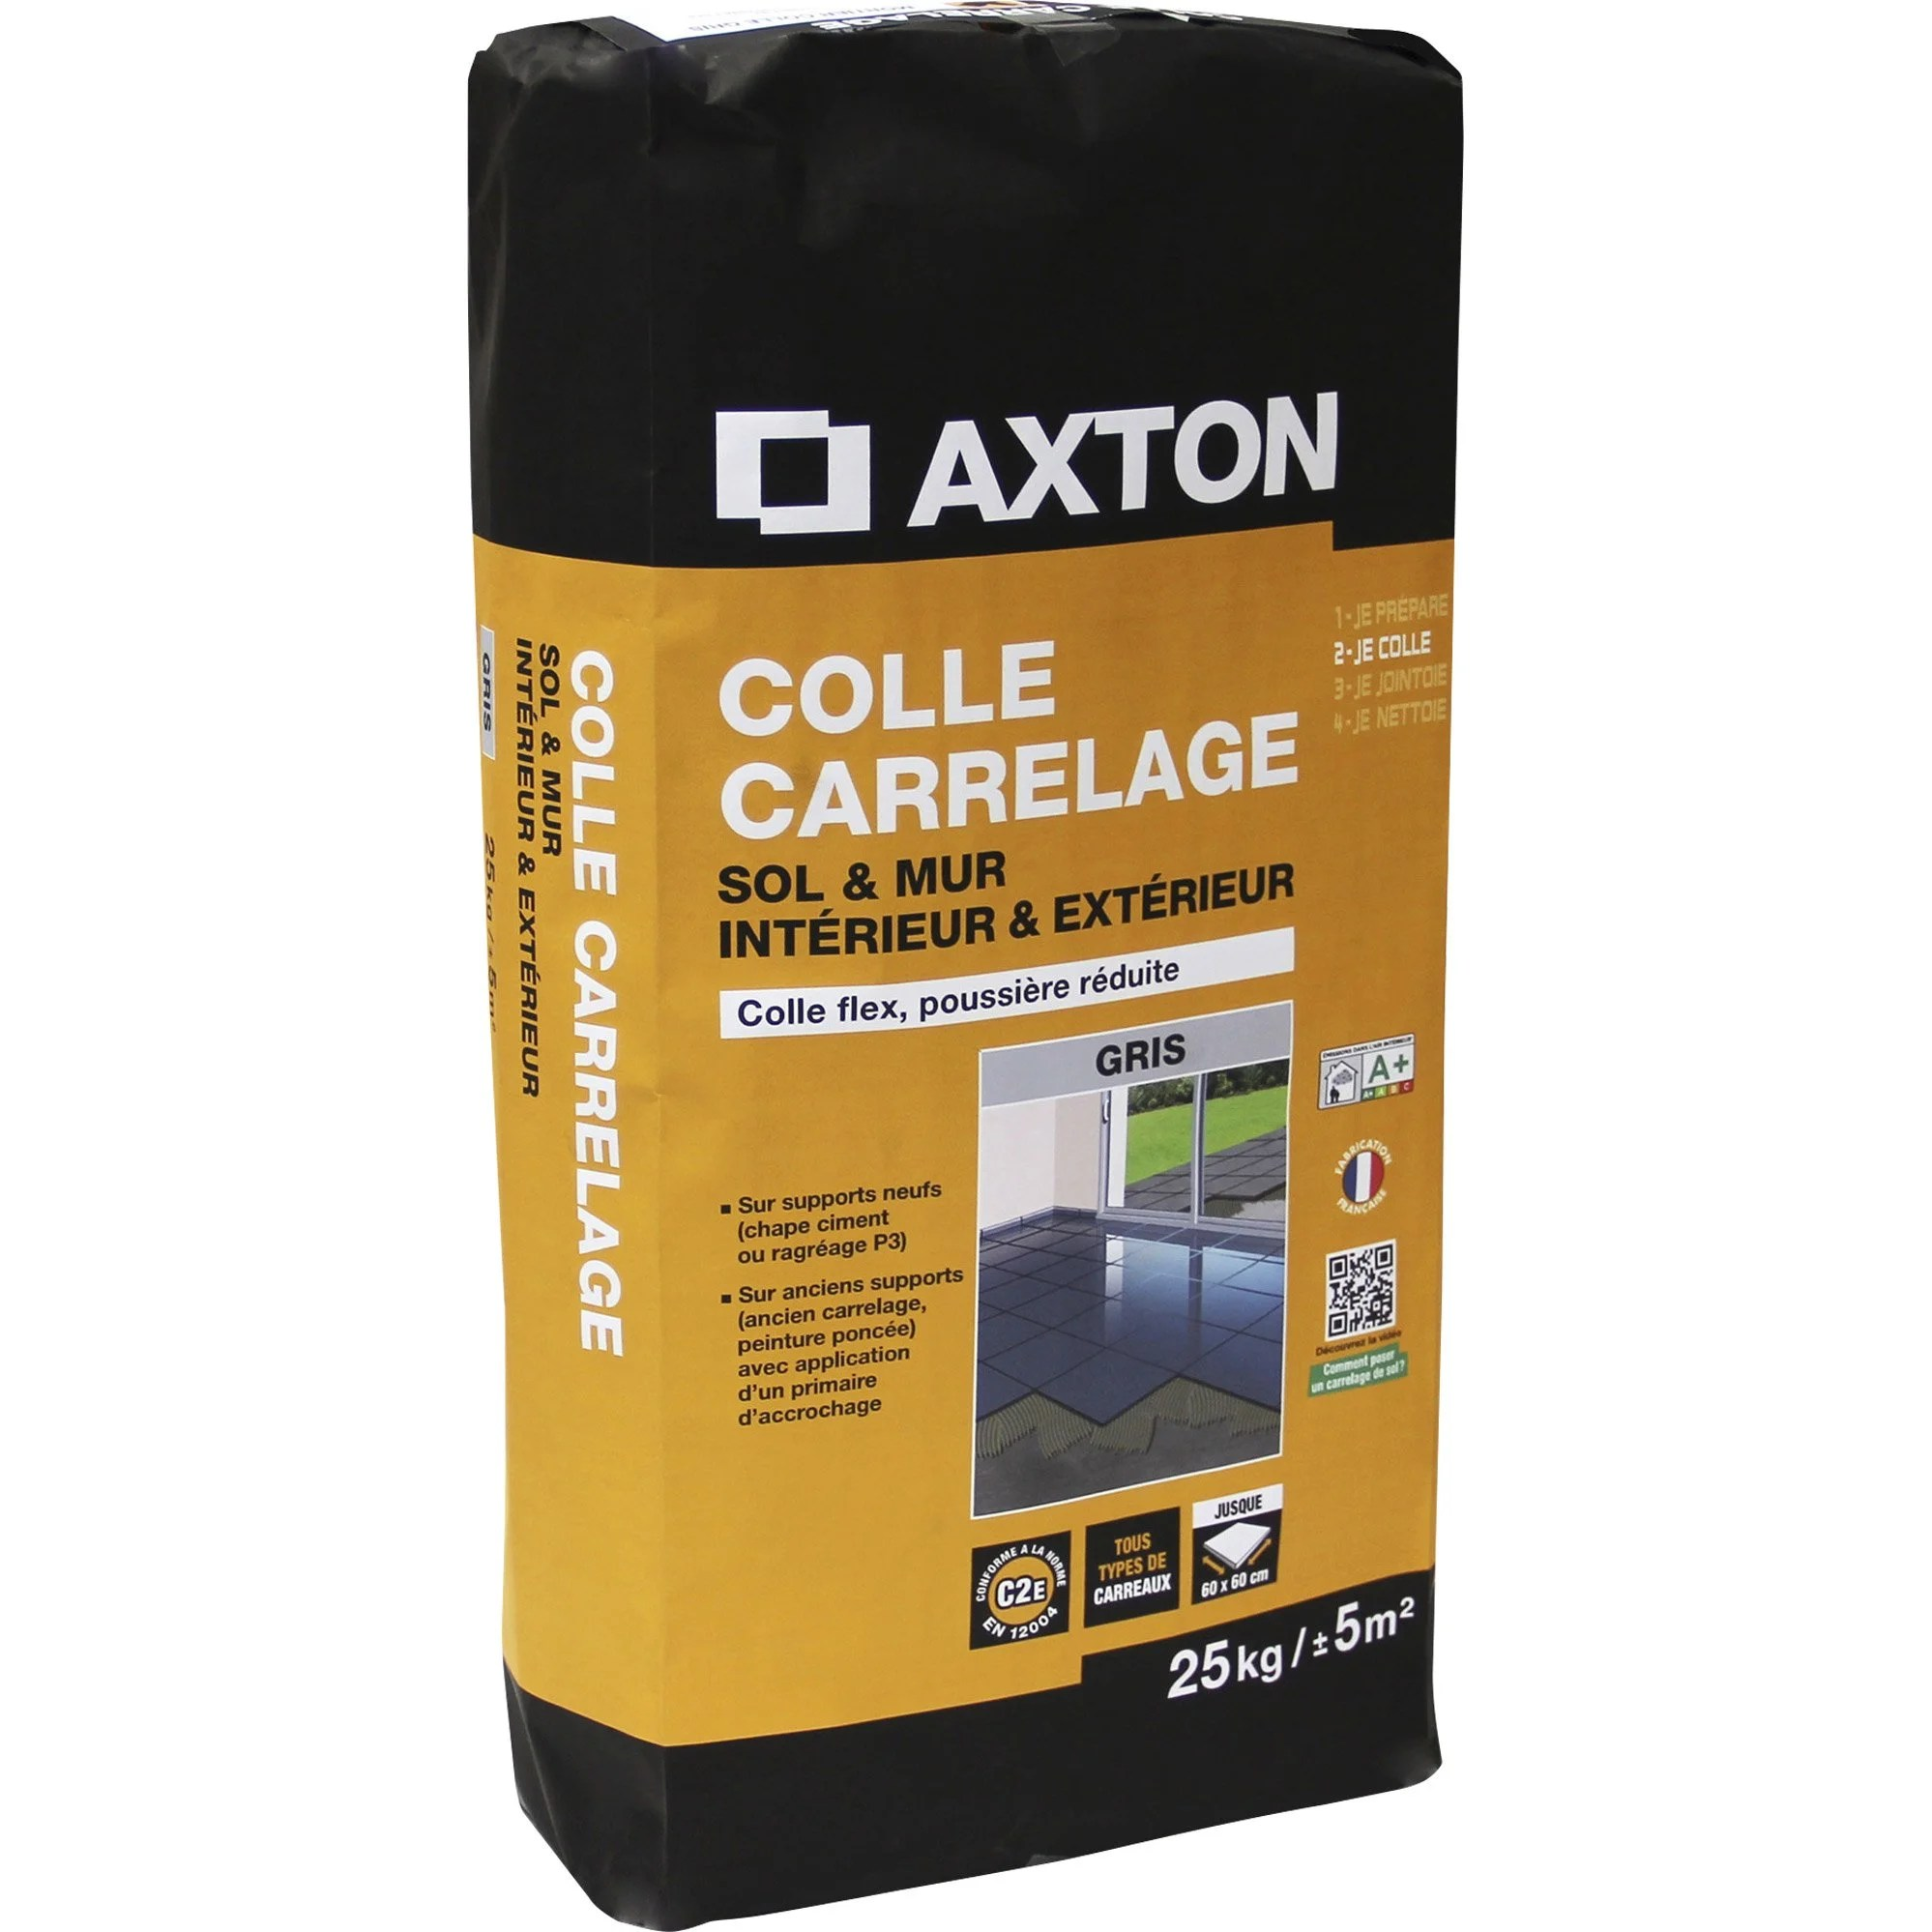 Mortier Colle Carrelage Exterieur Mortier Colle Flexible Carrelage Mur Et Sol Gris Axton 25 Kg